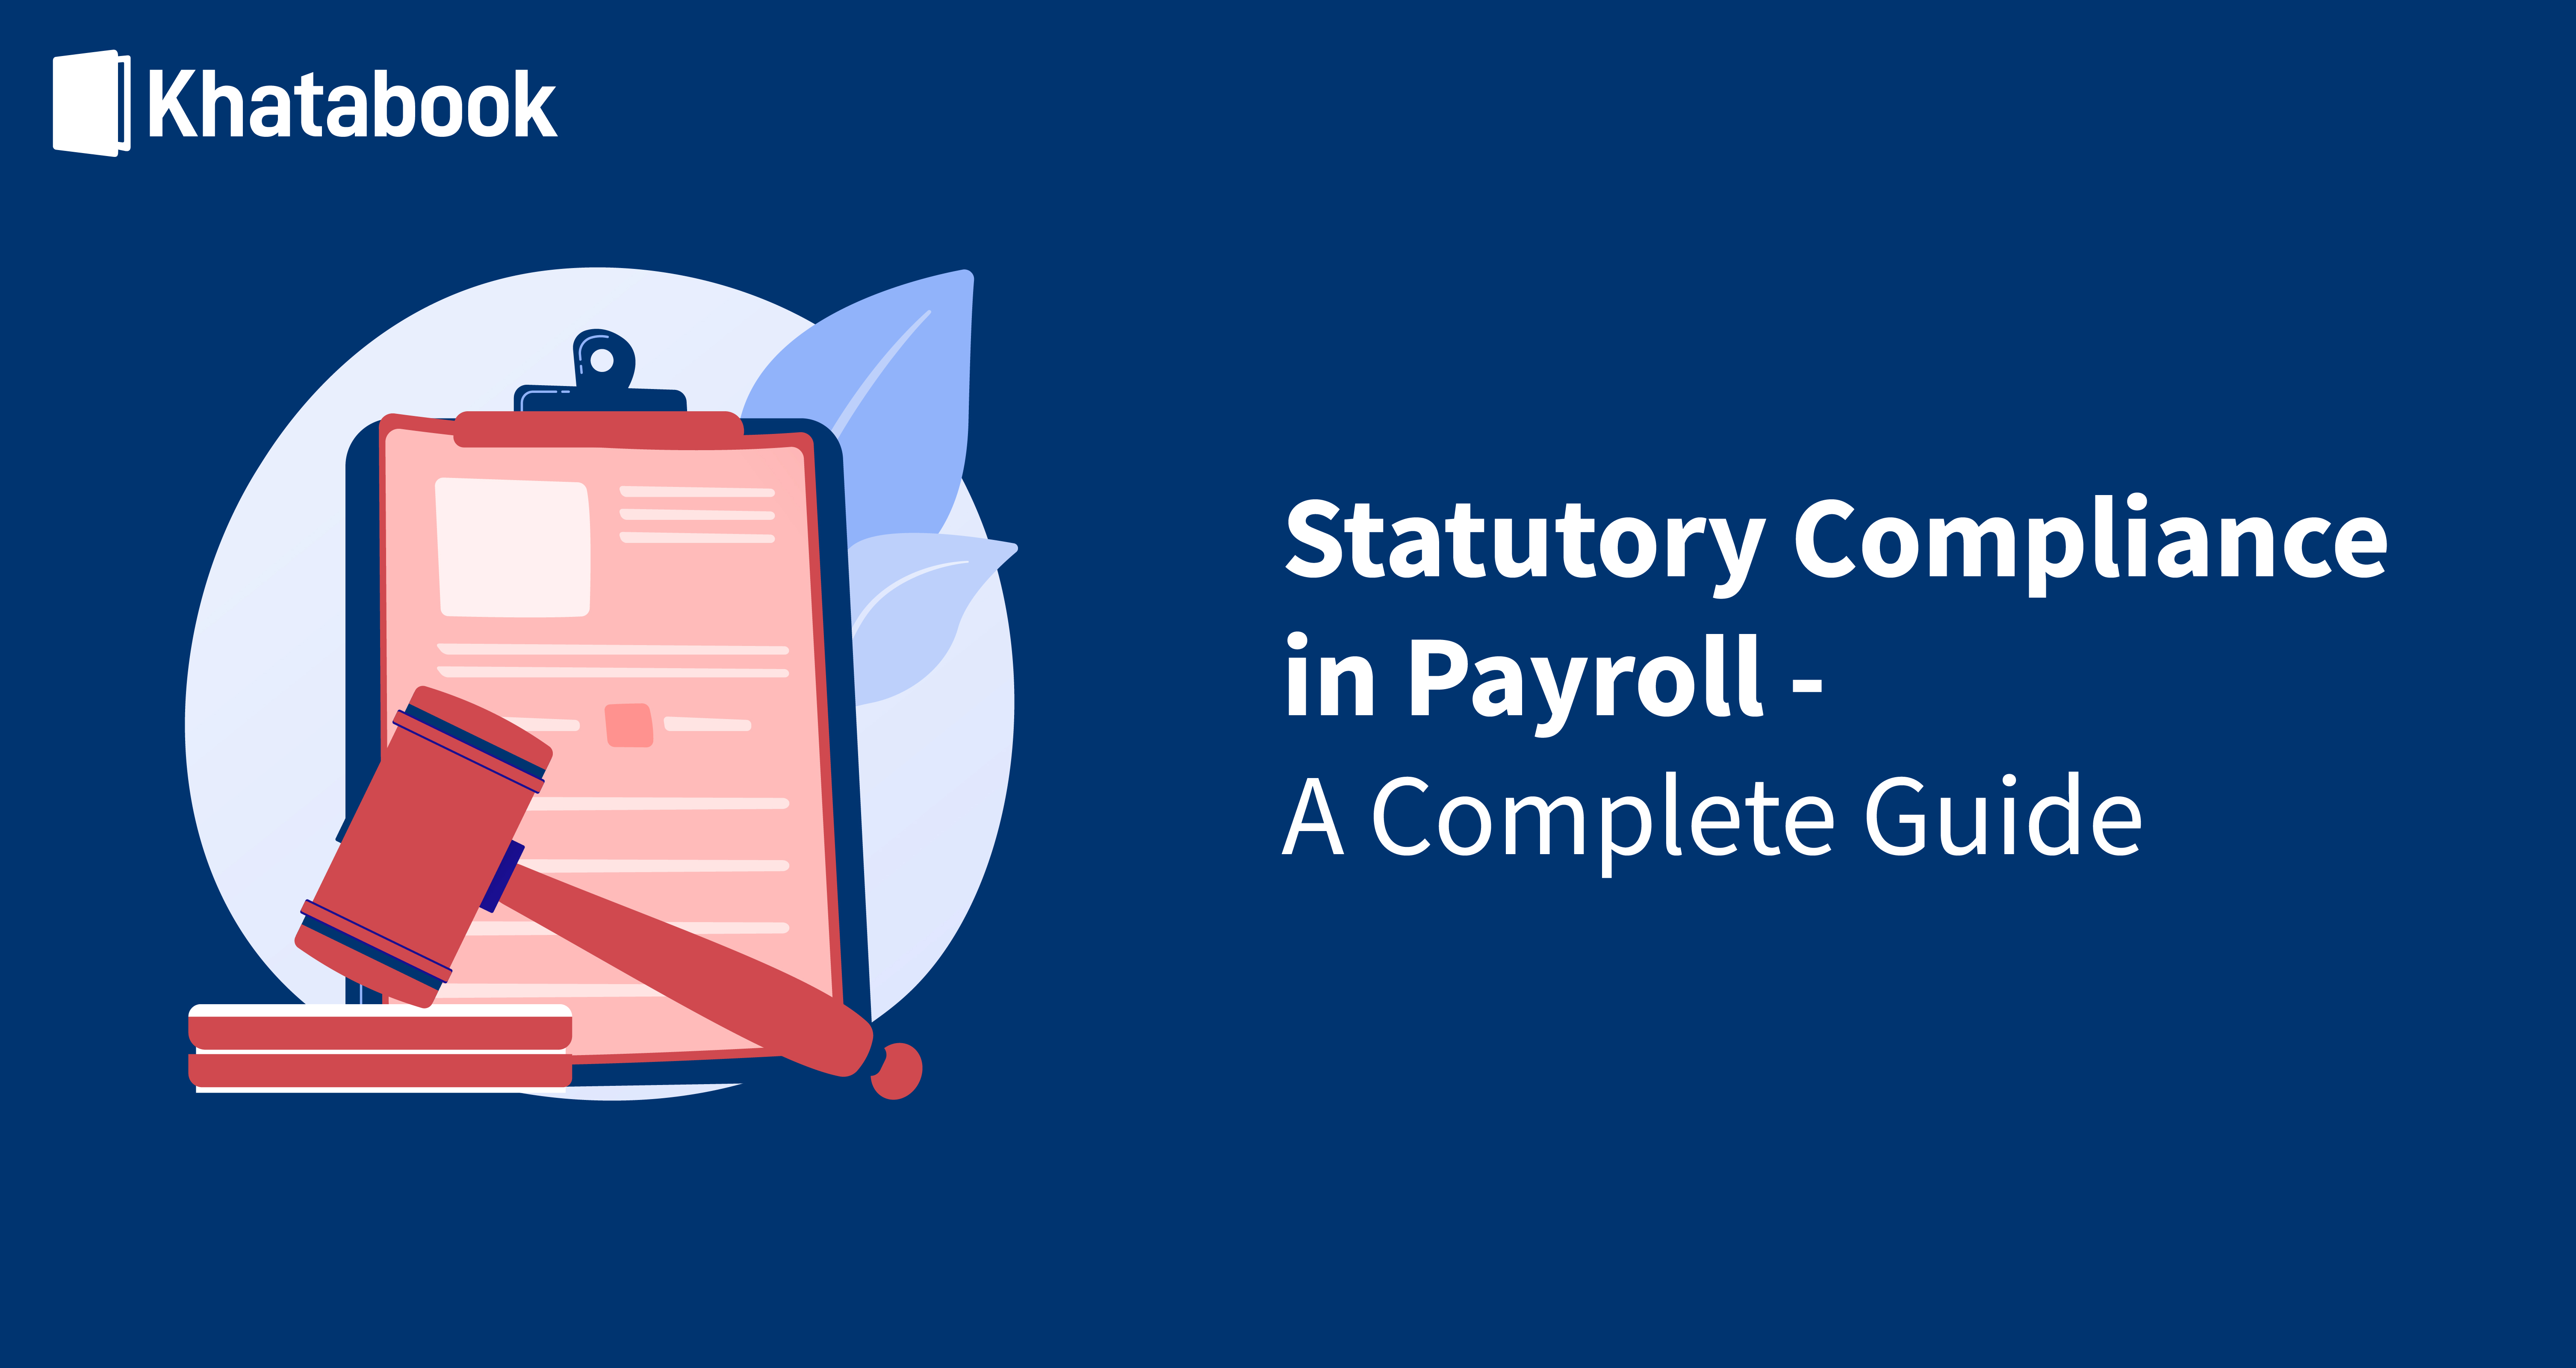 Meaning of Statutory Compliance in Payroll